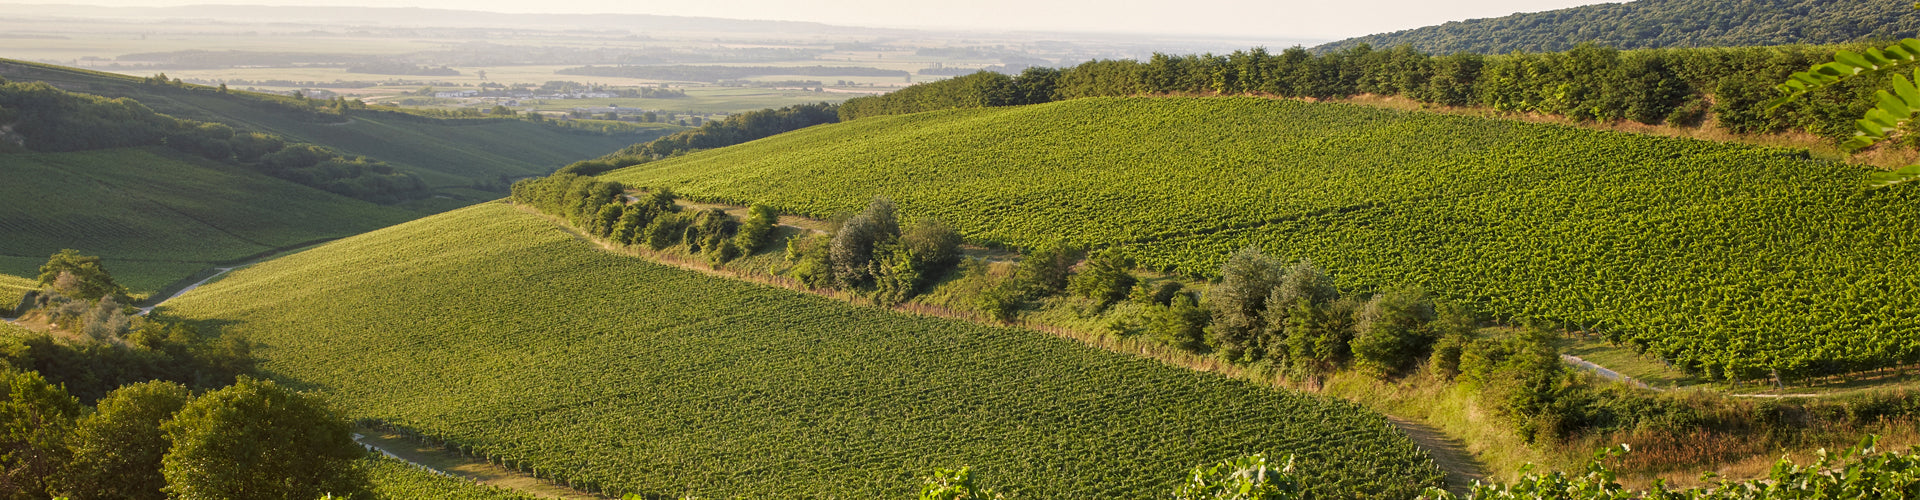 Sauska Vineyards in Tokaj, Hungary